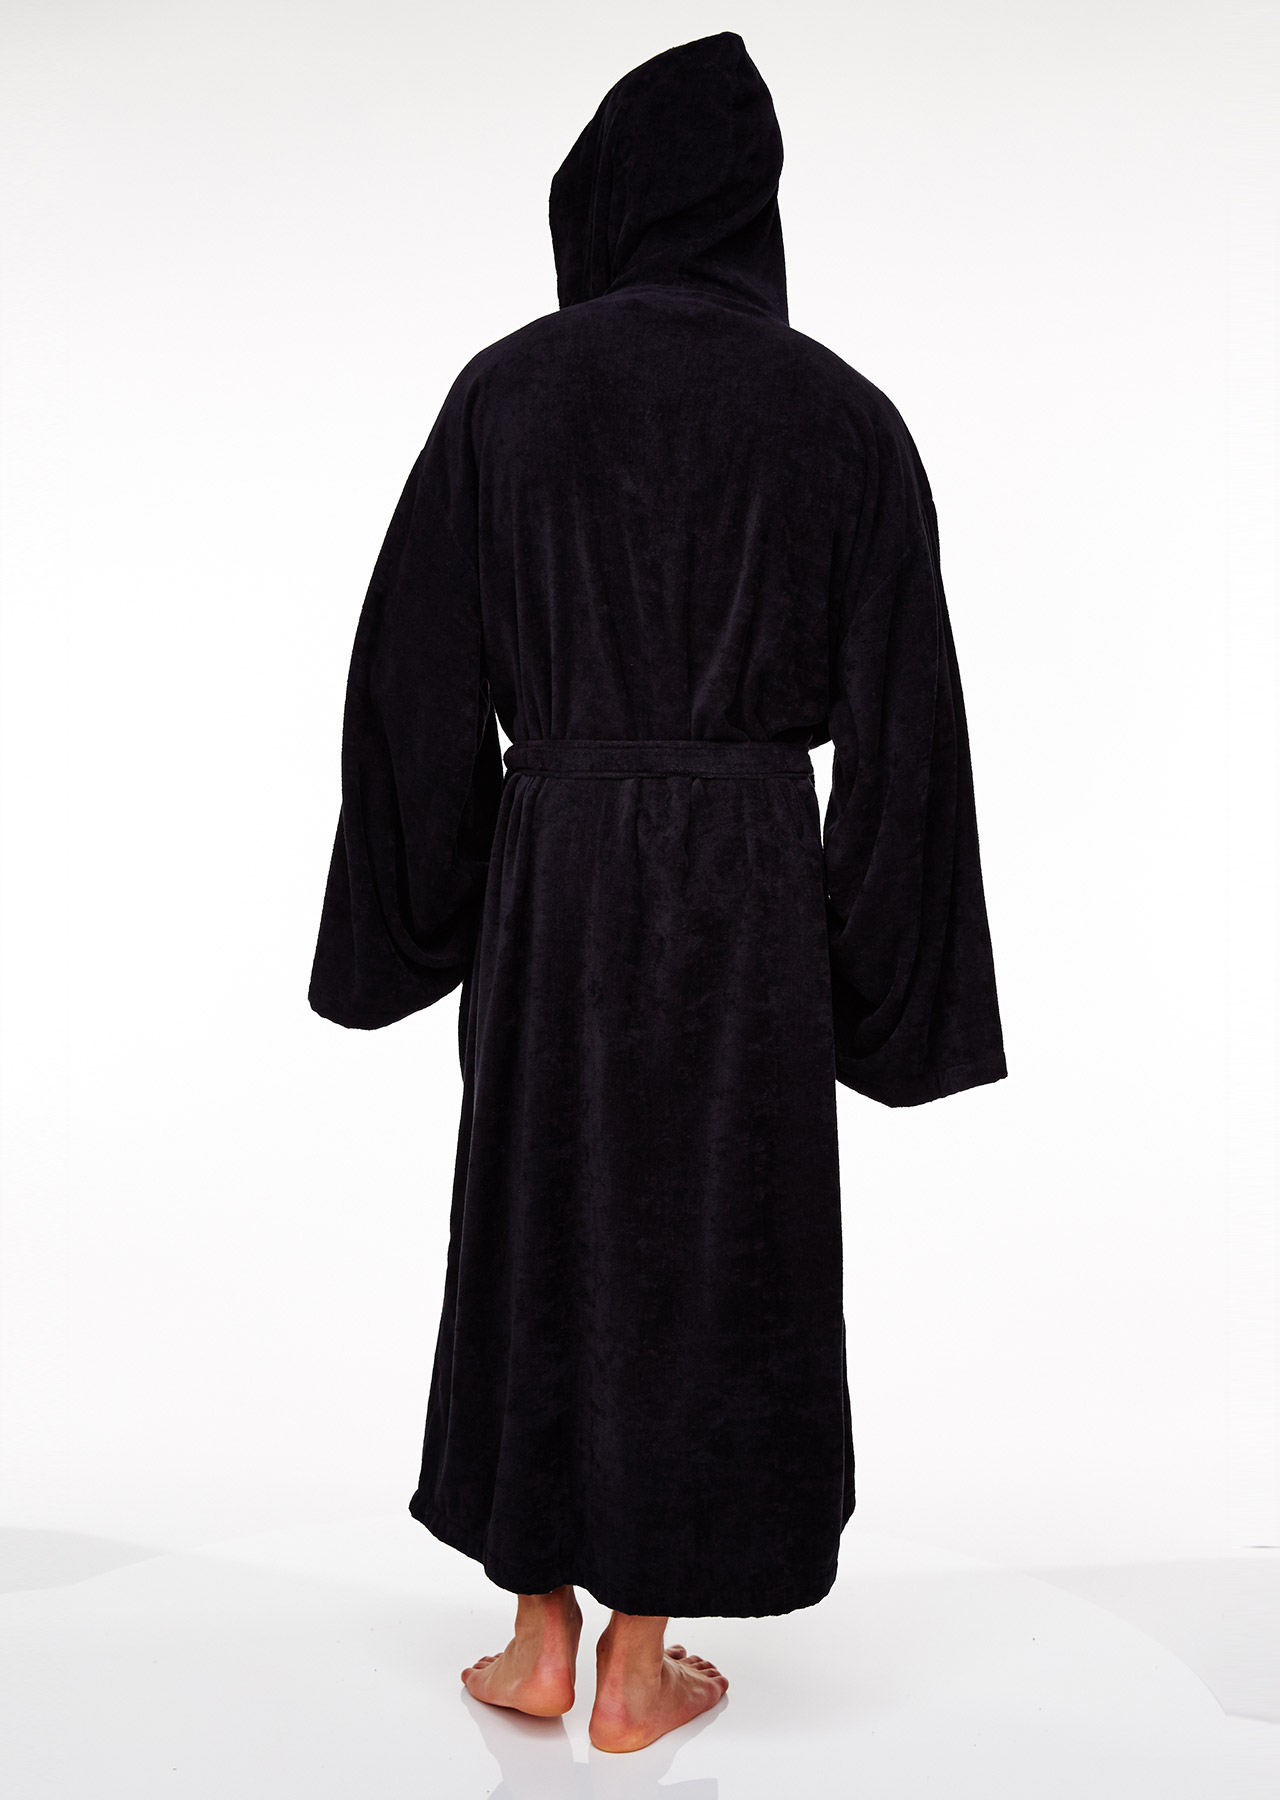 300d4c1f6d Star Wars Galactic Empire Adult Fleece Bathrobe – Groovy UK